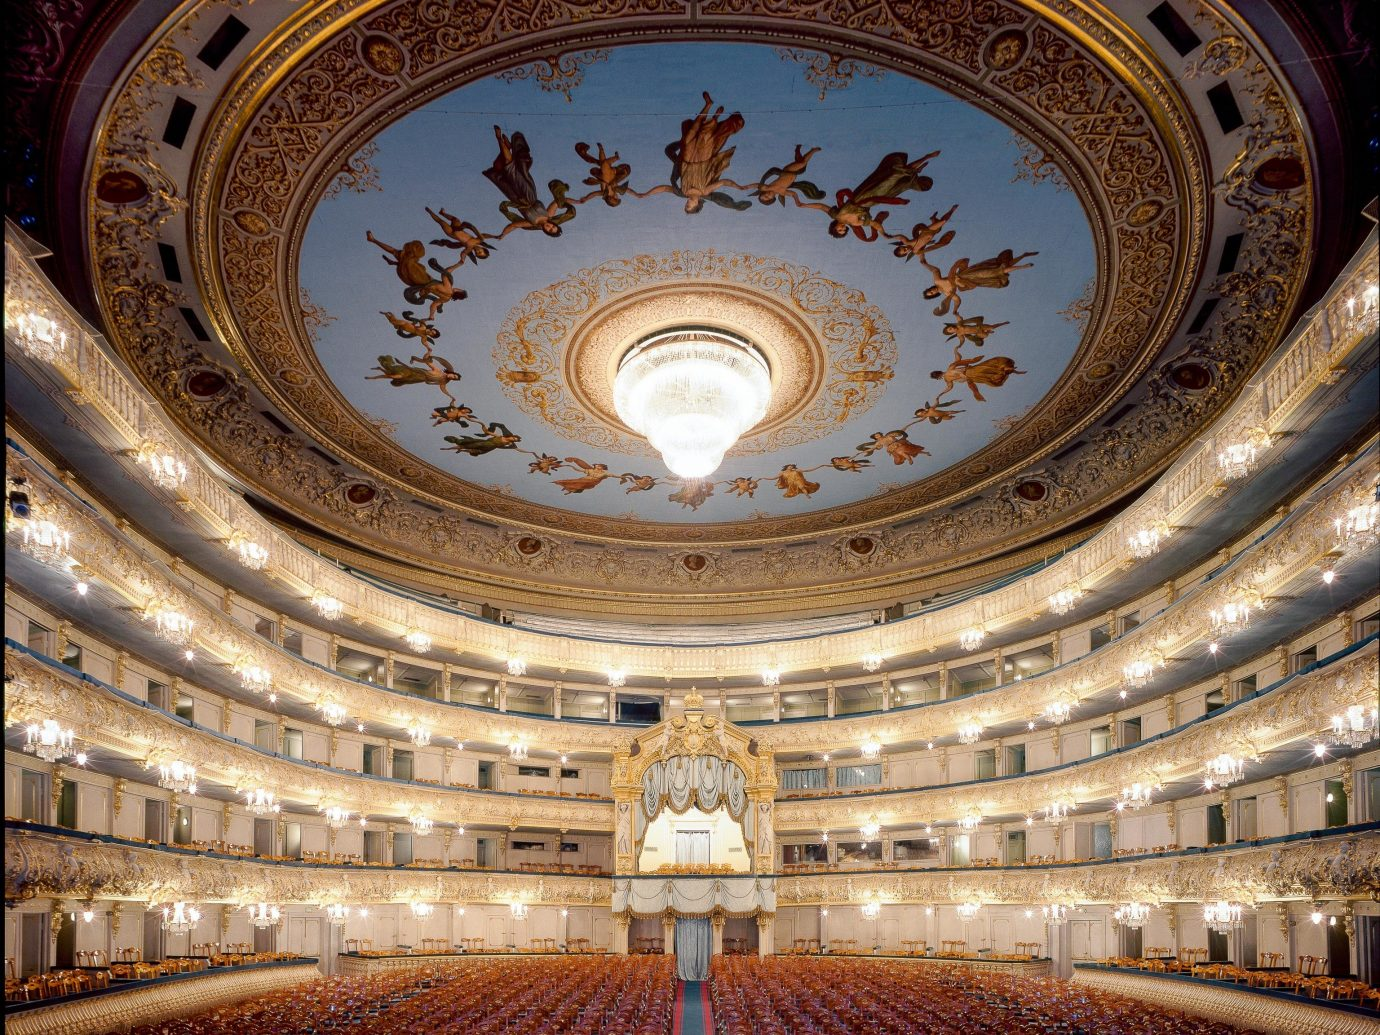 Arts + Culture Hotels Jetsetter Guides indoor landmark building theatre ceiling opera house tourist attraction symmetry dome historic site daylighting basilica performing arts center